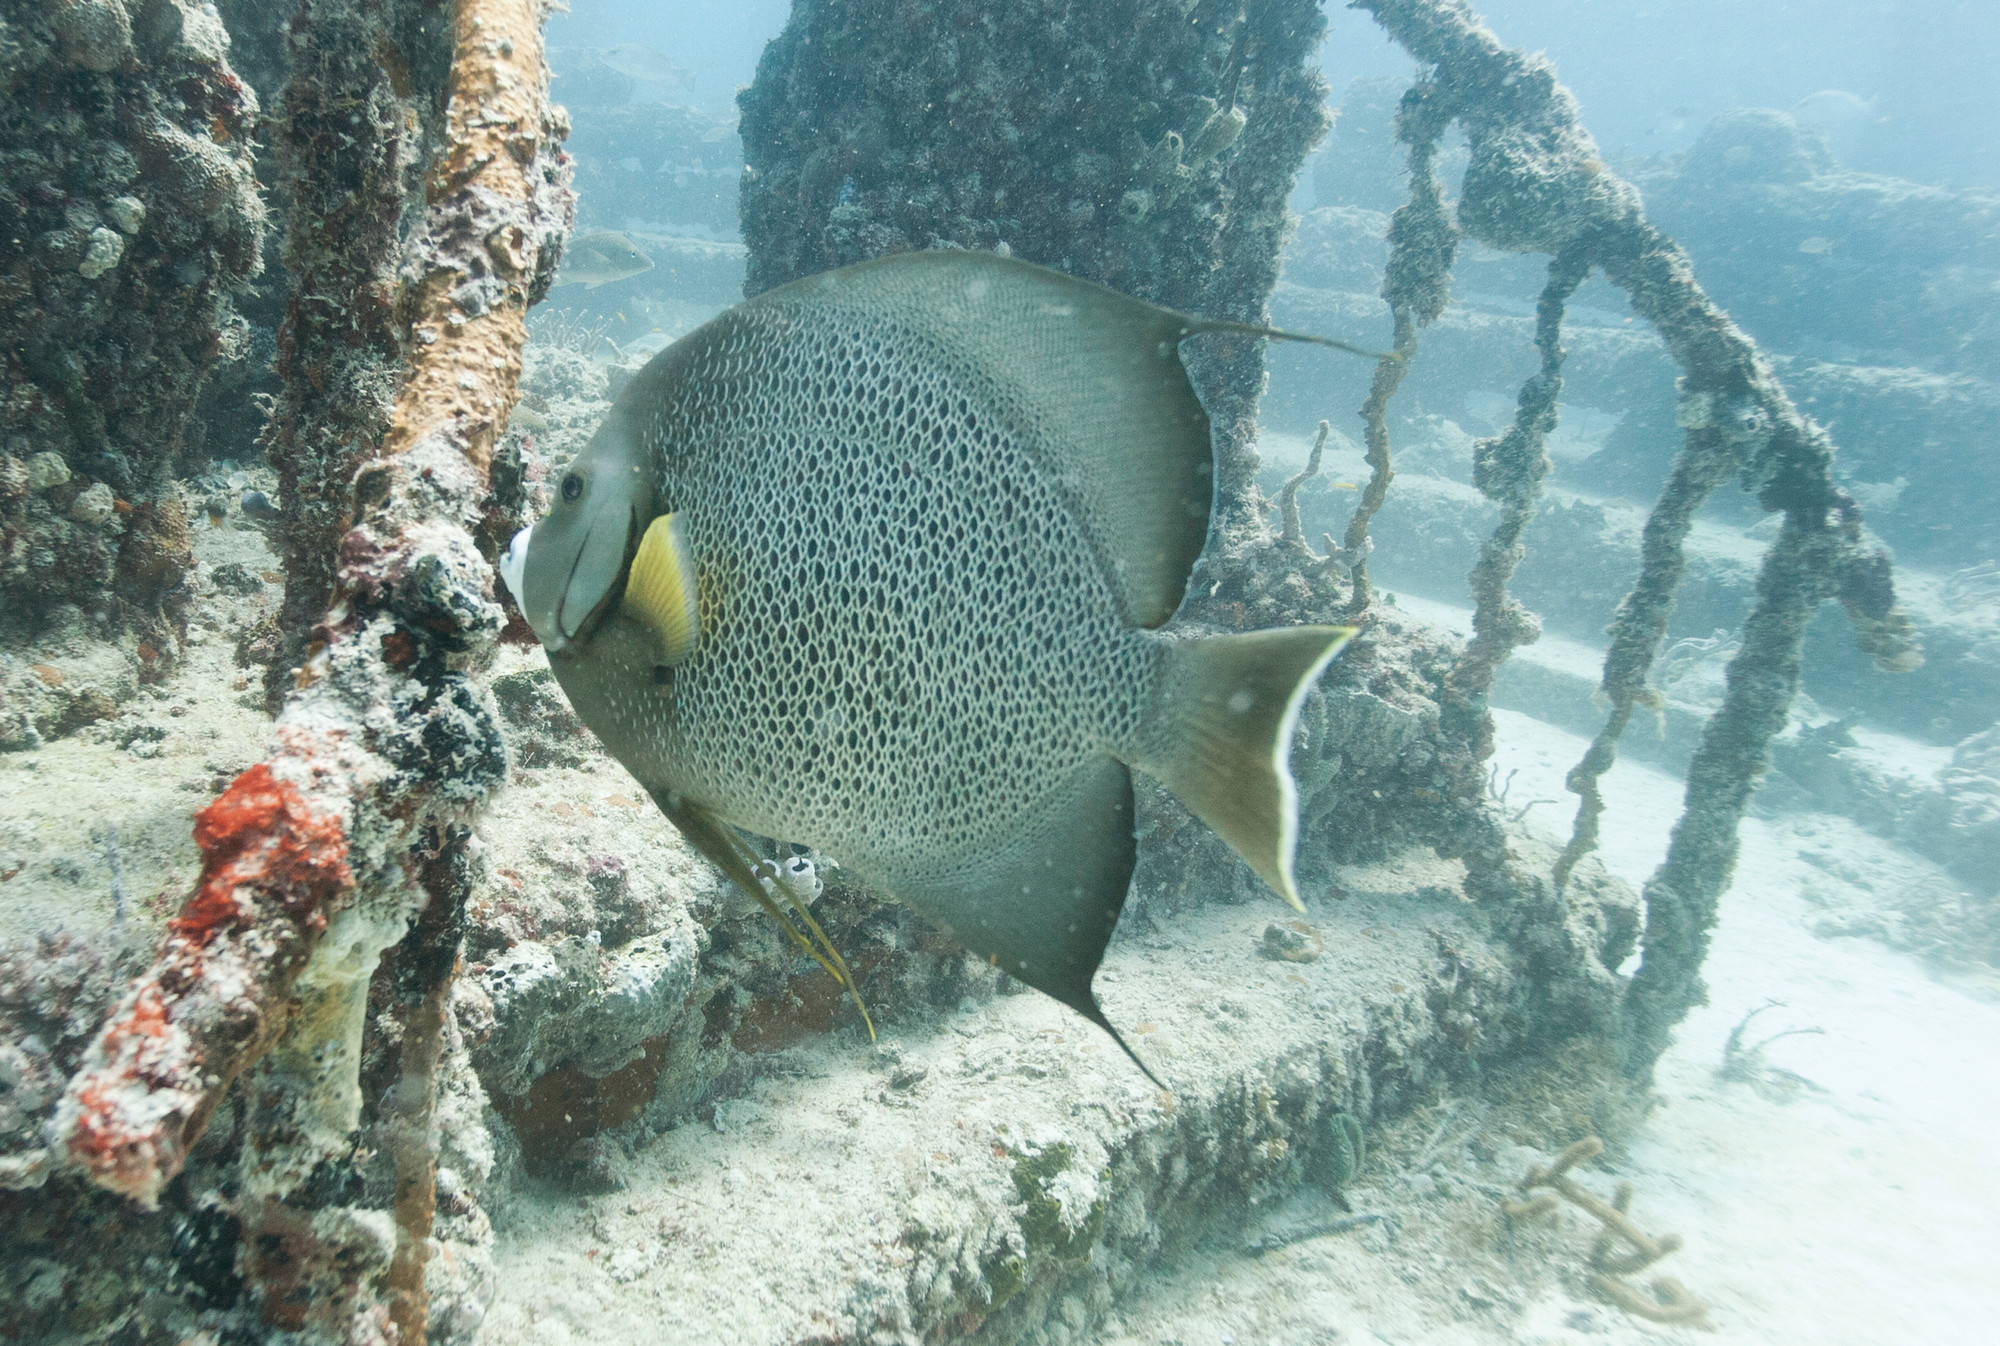 A large gray angelfish swims near a stairway at the reef.